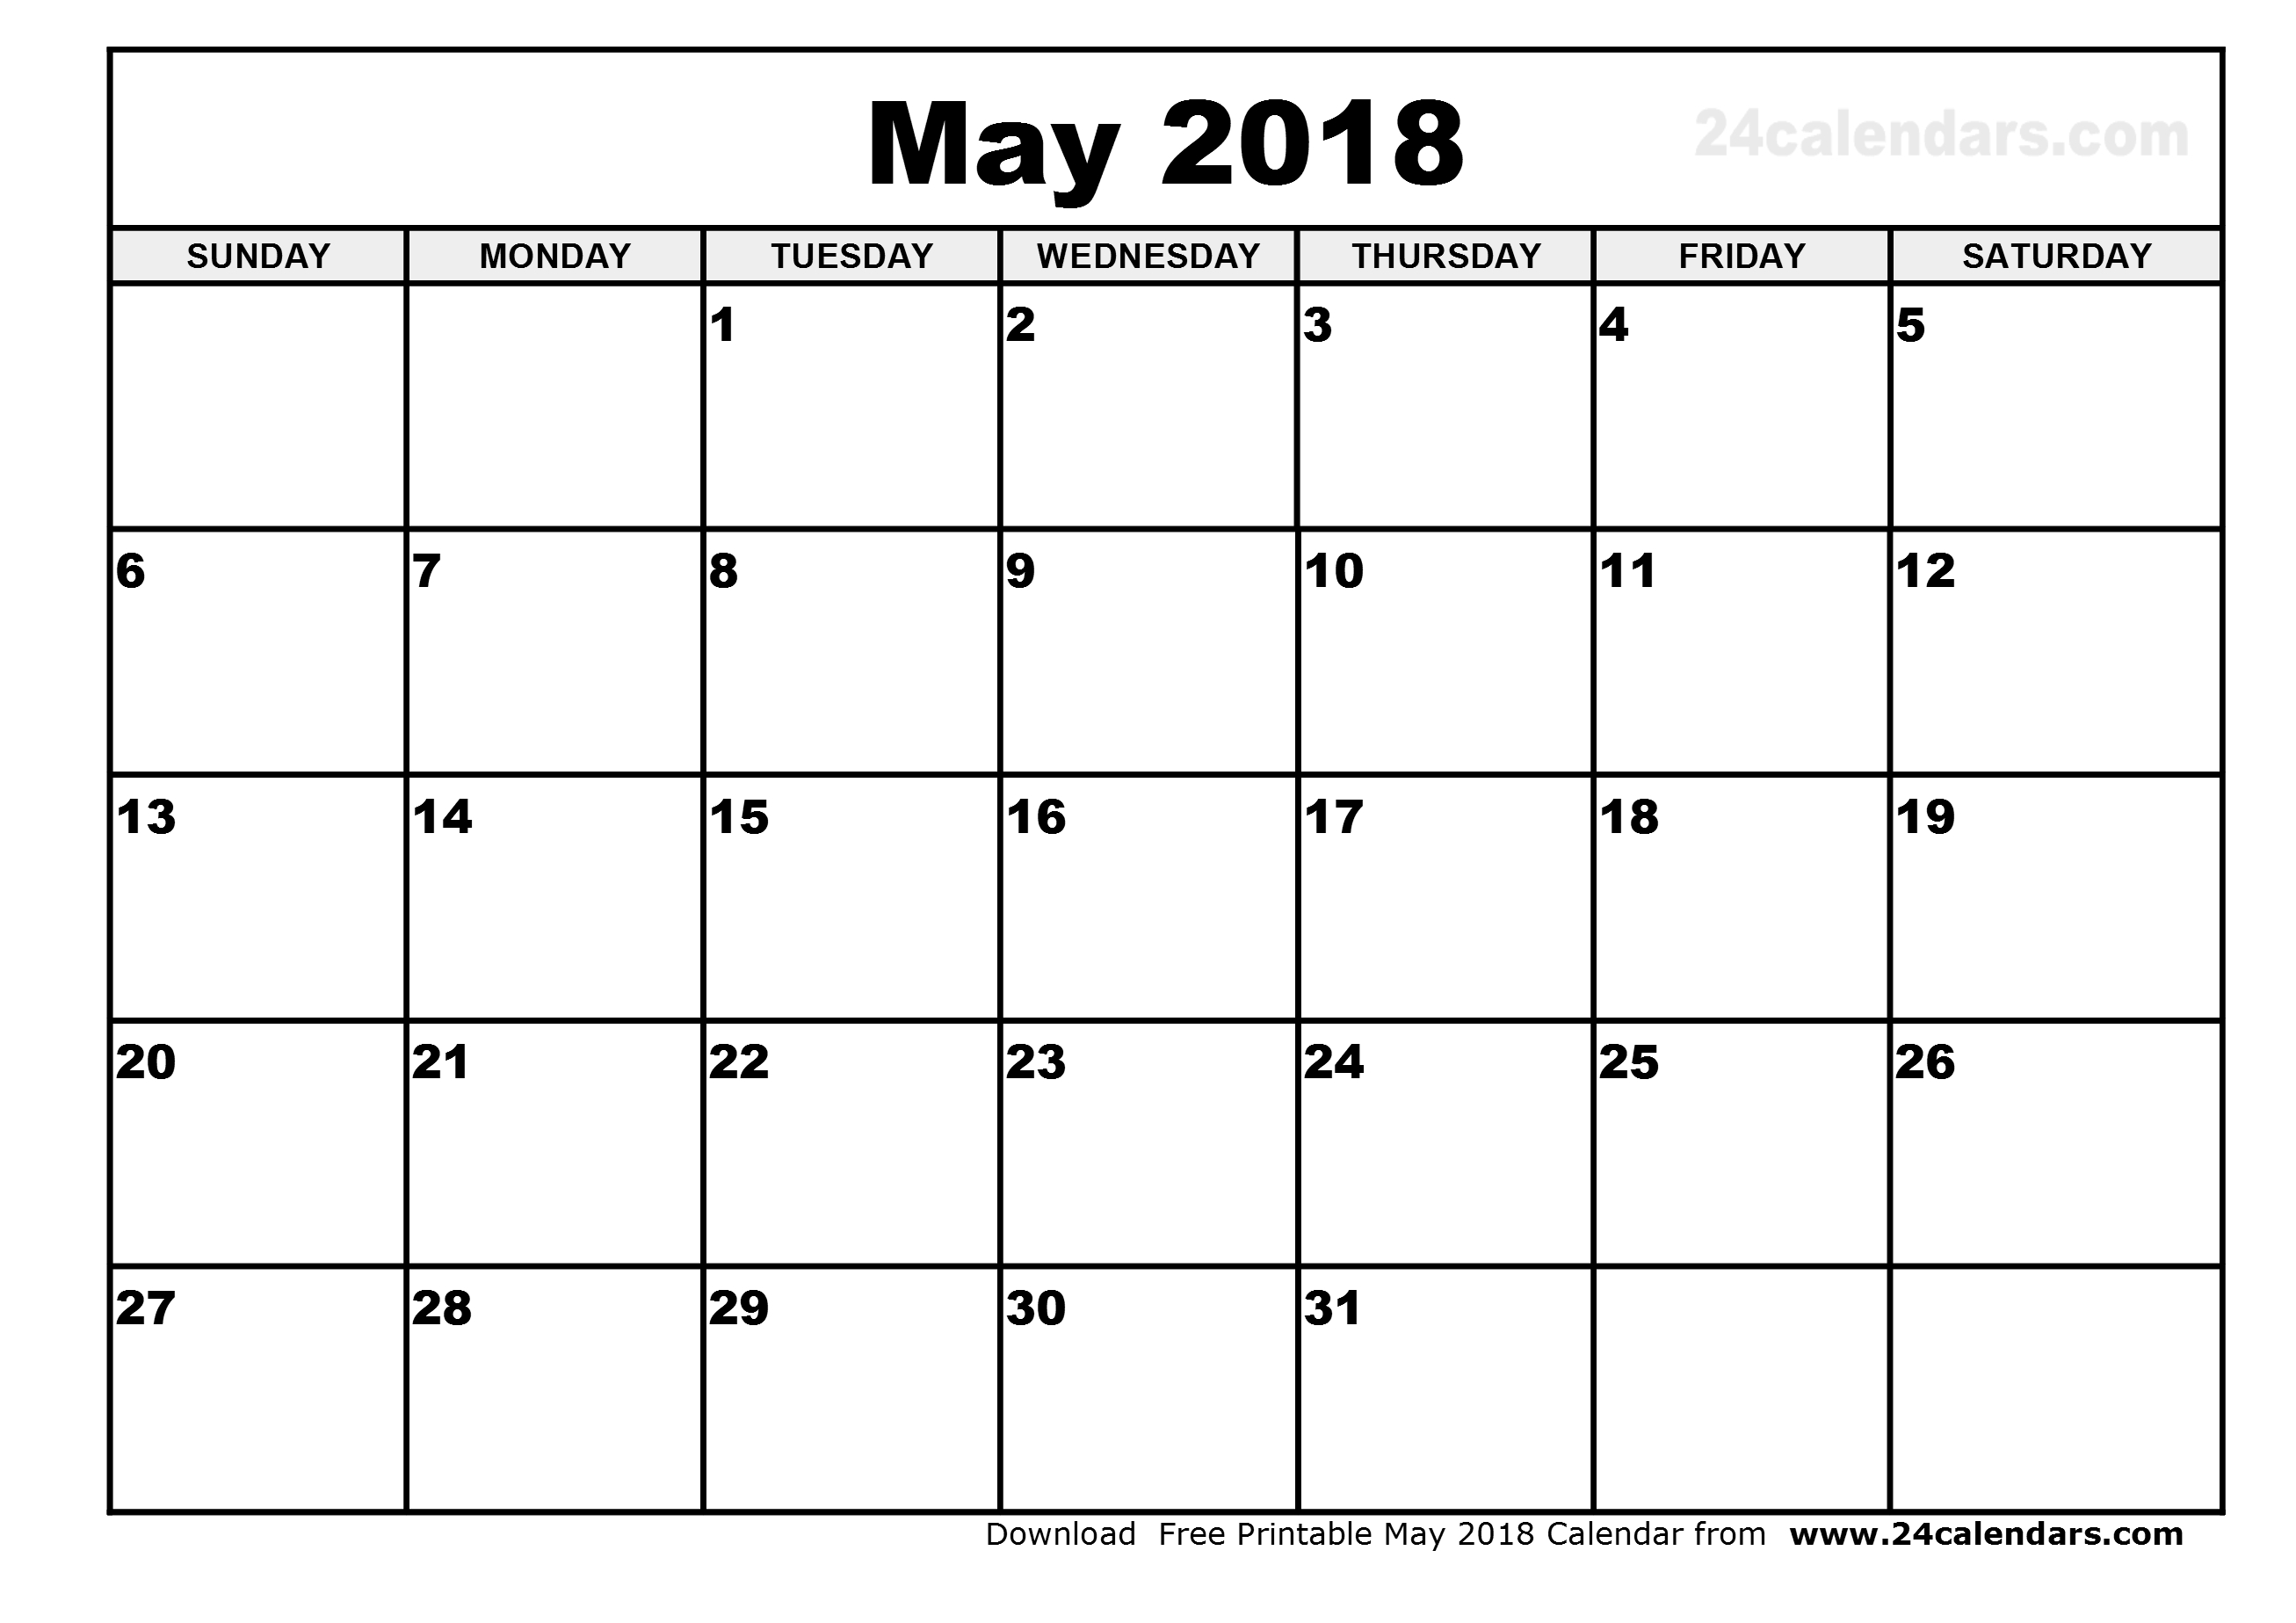 Download may 2018 calendar printable free